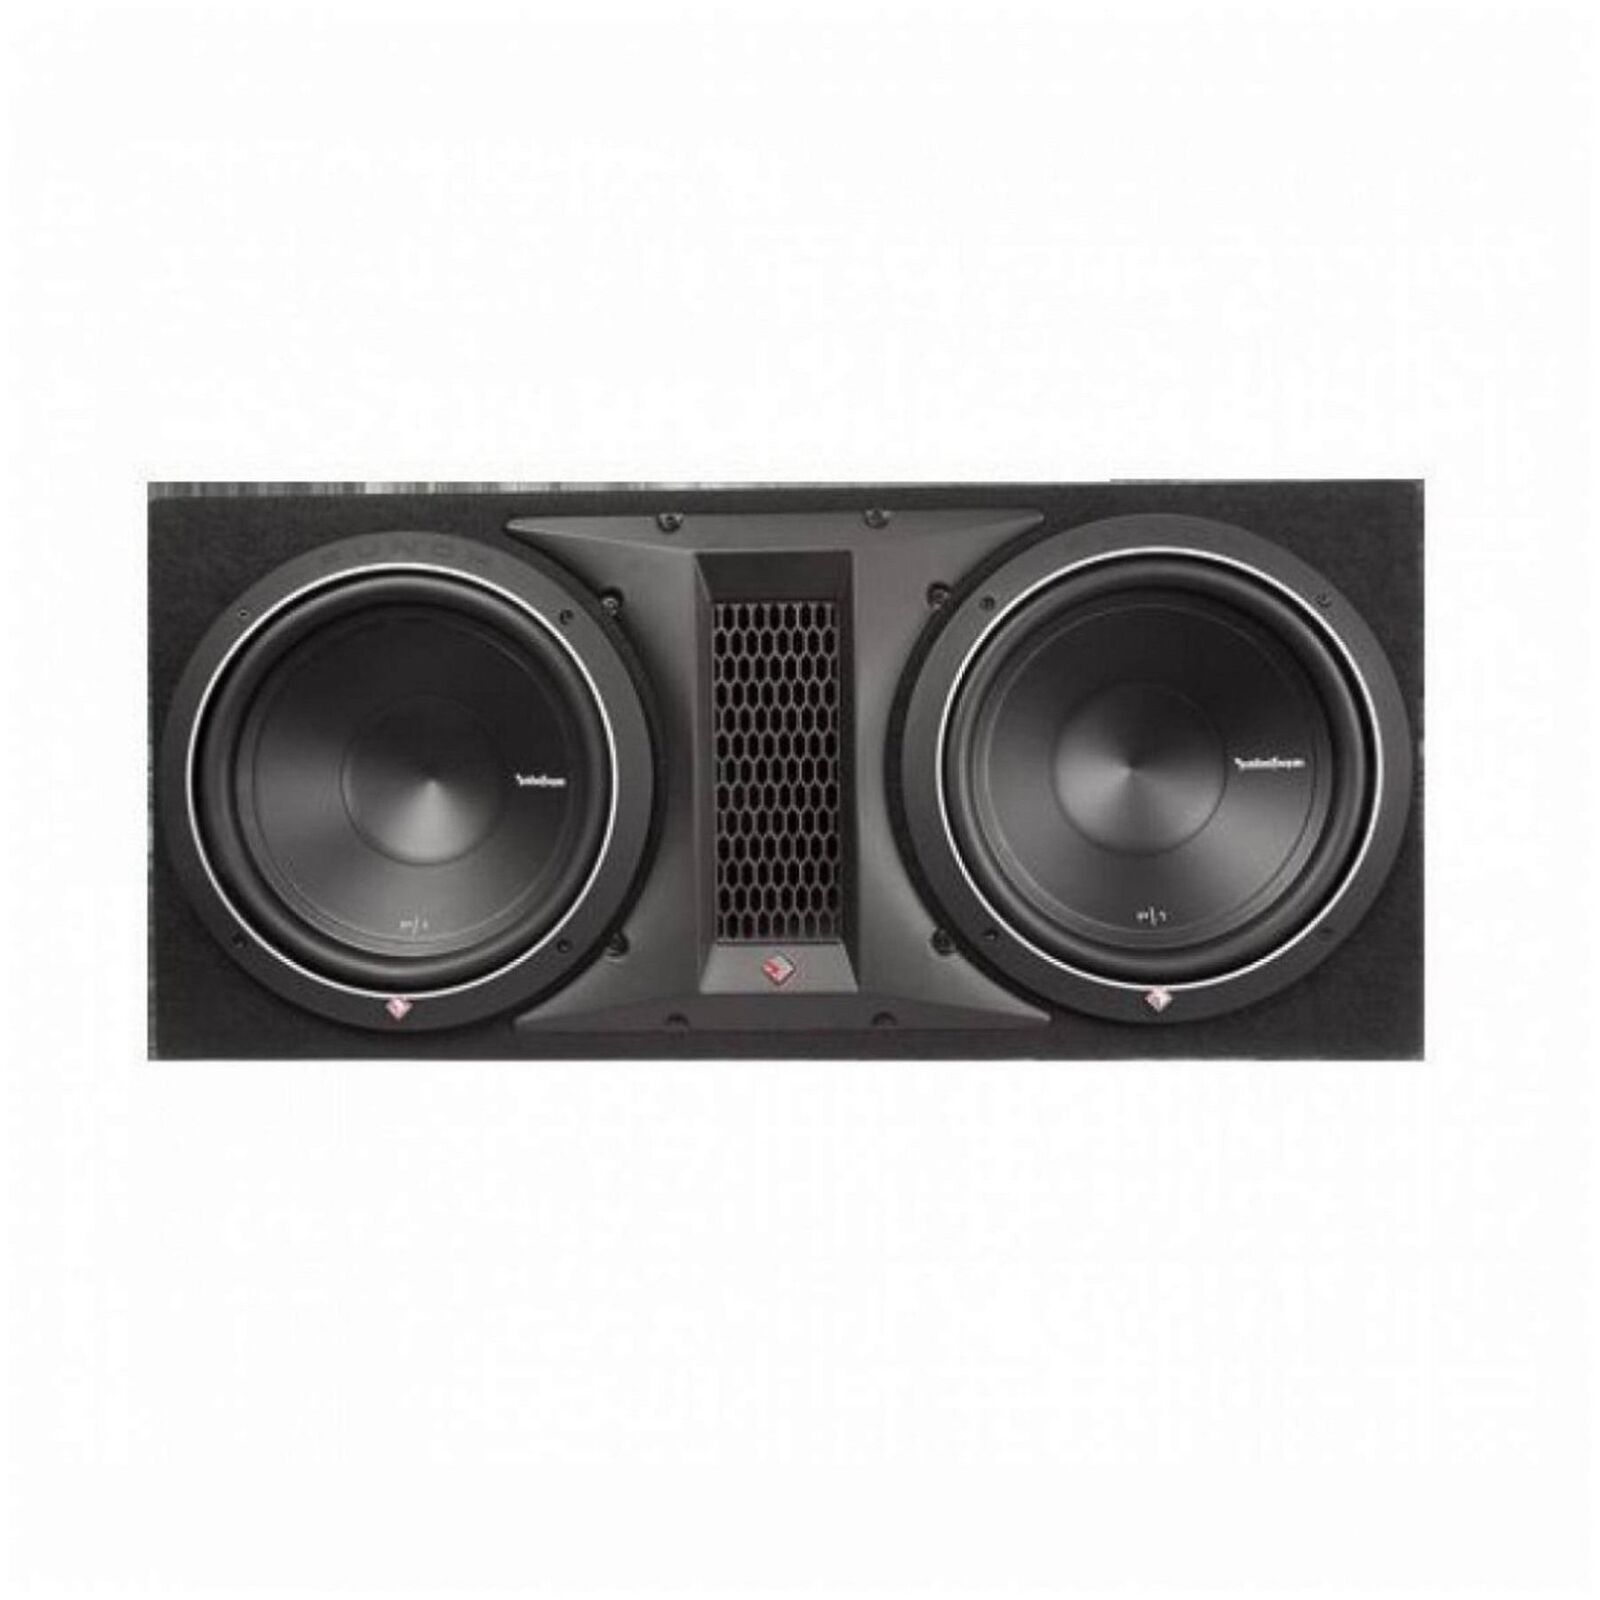 Rockford Fosgate P1 2x12 Dual 12 Loaded Subwoofer Enclosure For Norton Secured Powered By Verisign